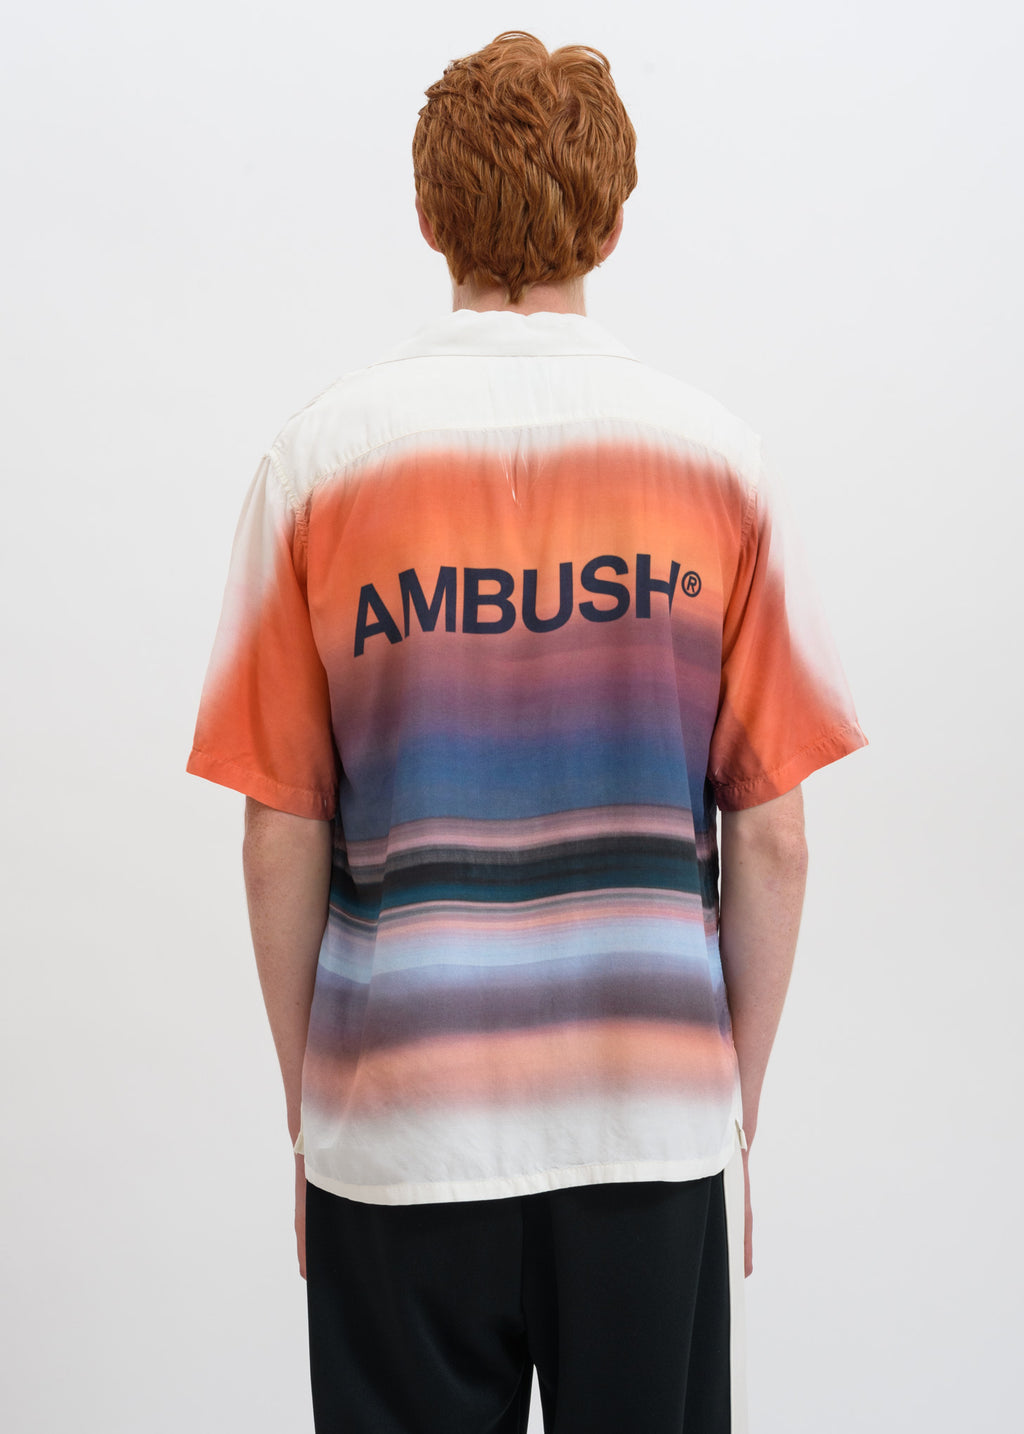 Ambush, Orange Hawaiian Shirt, 017 Shop